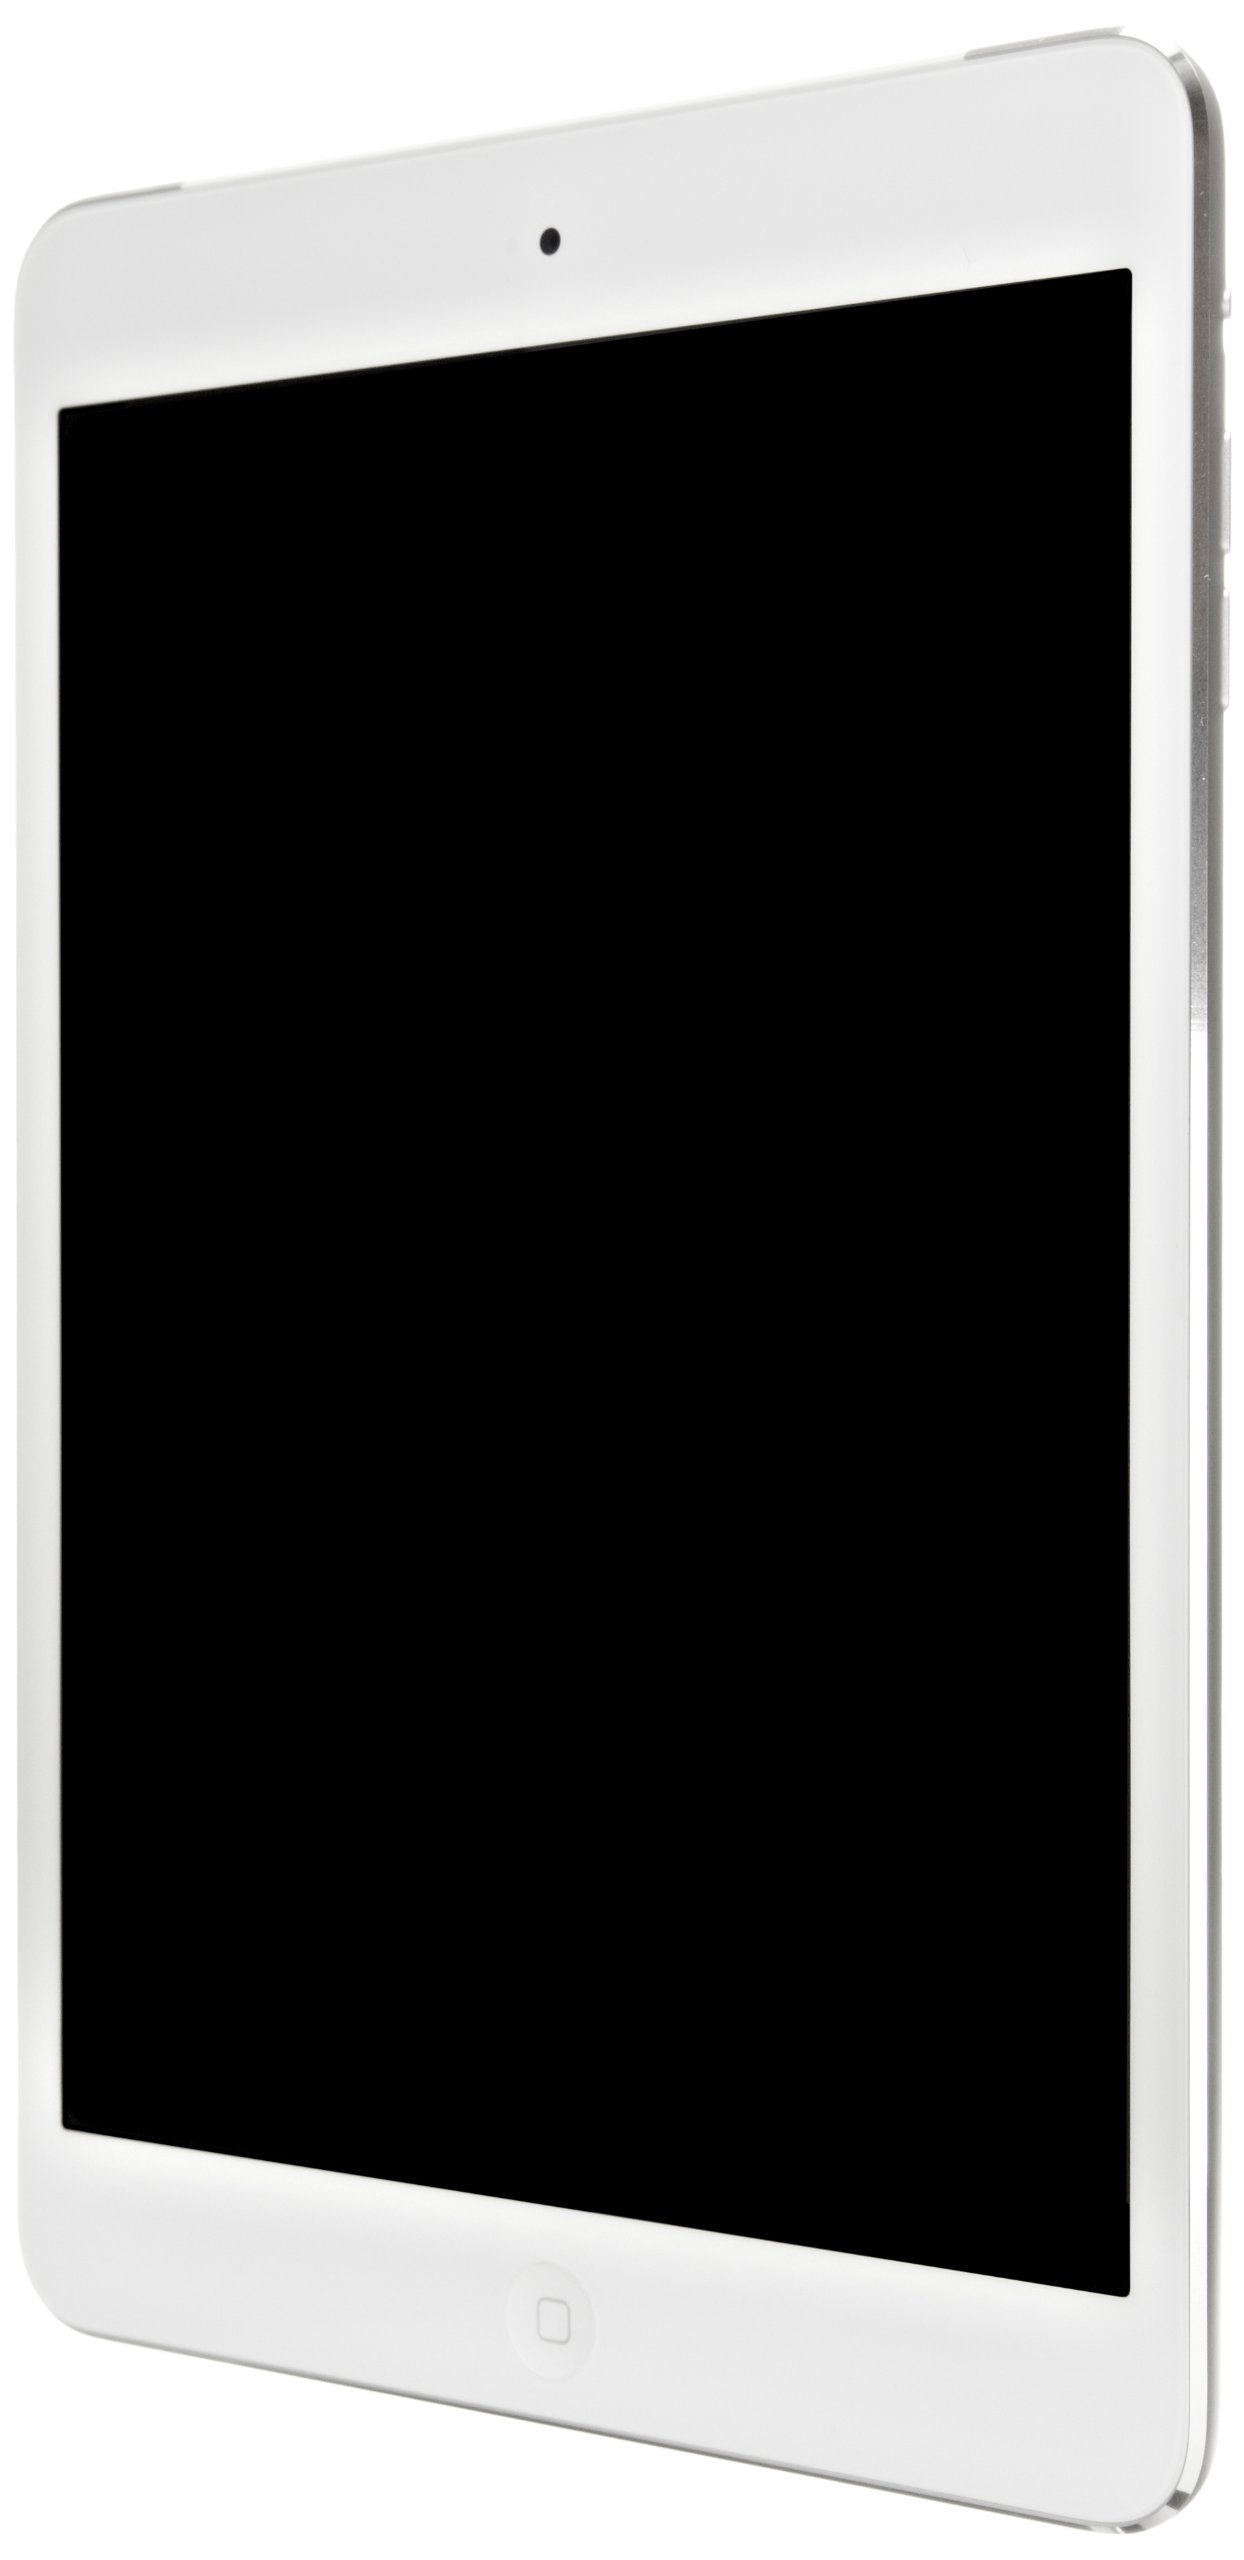 Apple iPad mini 2 with Retina Display MF075LL/A 16GB Memory Wi-Fi  4G LTE Verizon [White With Silver][Old Version] by Apple (Image #2)